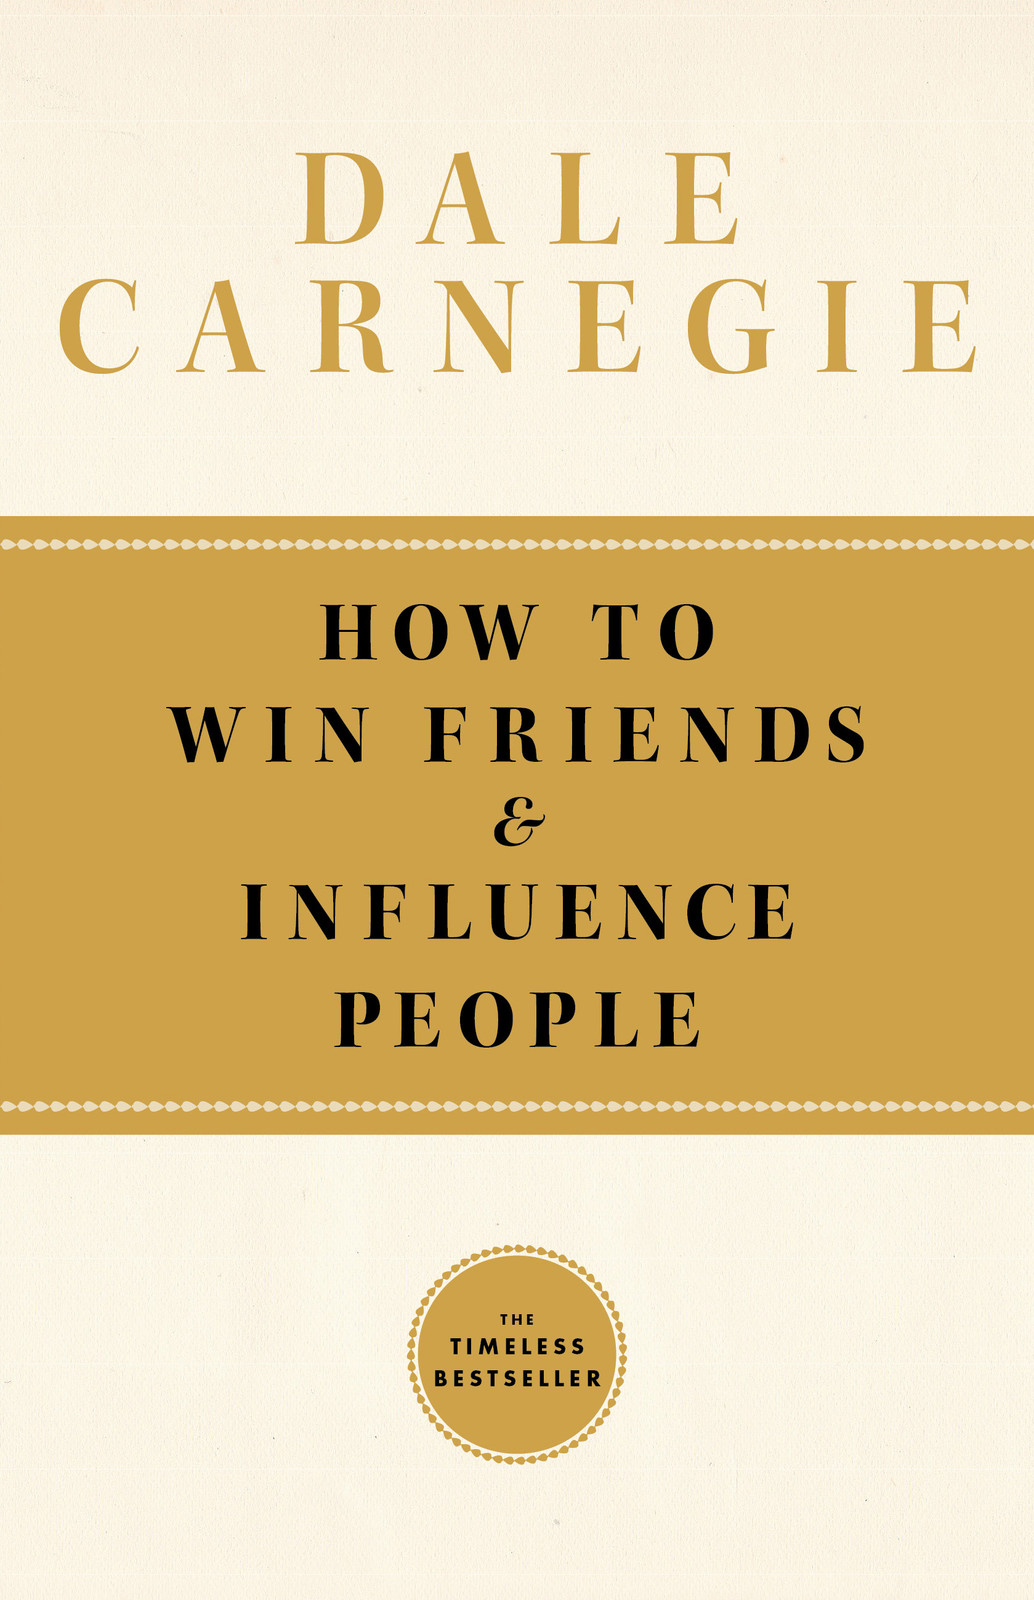 Books | Lovage Inc | Reads to Inspire